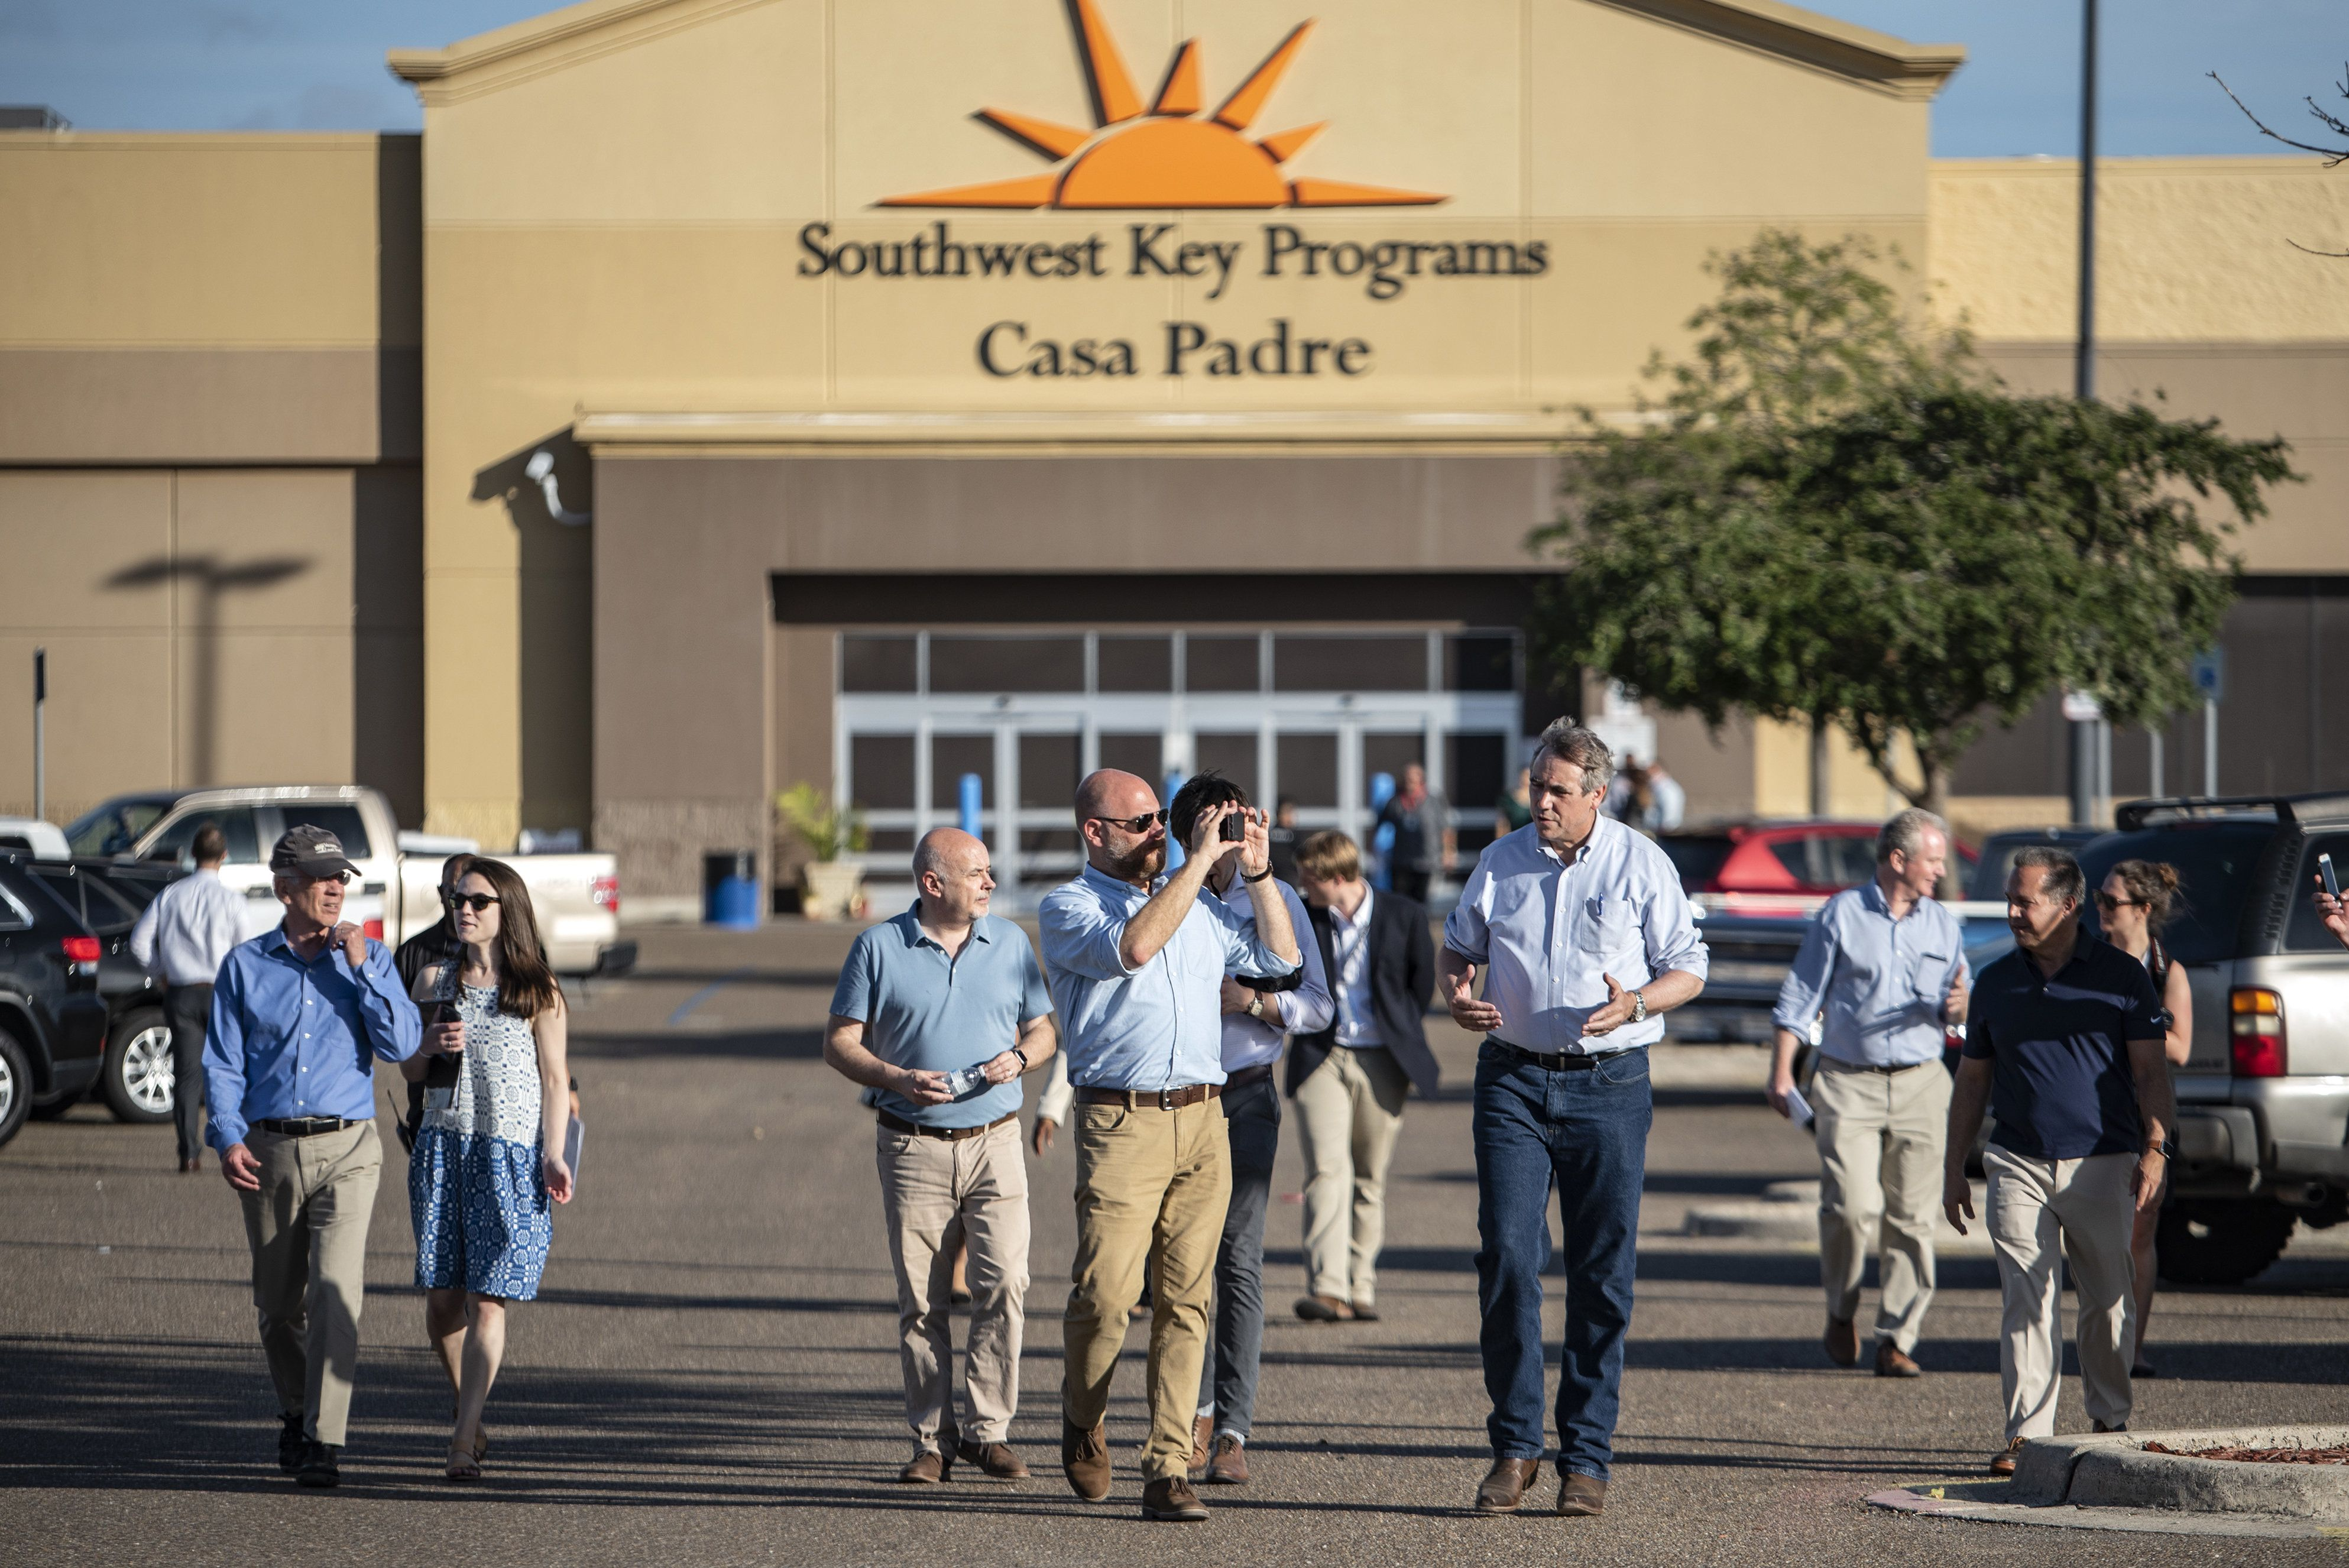 Senator Jeff Merkley, a democrat from Oregon, fourth from right, leaves the Southwest Key-Casa Padre Facility, formerly a Walmart Inc. store, stands in Brownsville, Texas, U.S., on Sunday, June 17, 2018. Democrats escalated their attacks on President Donald Trump's policy of separating immigrant children from parents who illegally cross the Mexican border, as public outrage over the practice balloons into an election-year headache for Republicans. Photographer: Sergio Flores/Bloomberg via Getty Images